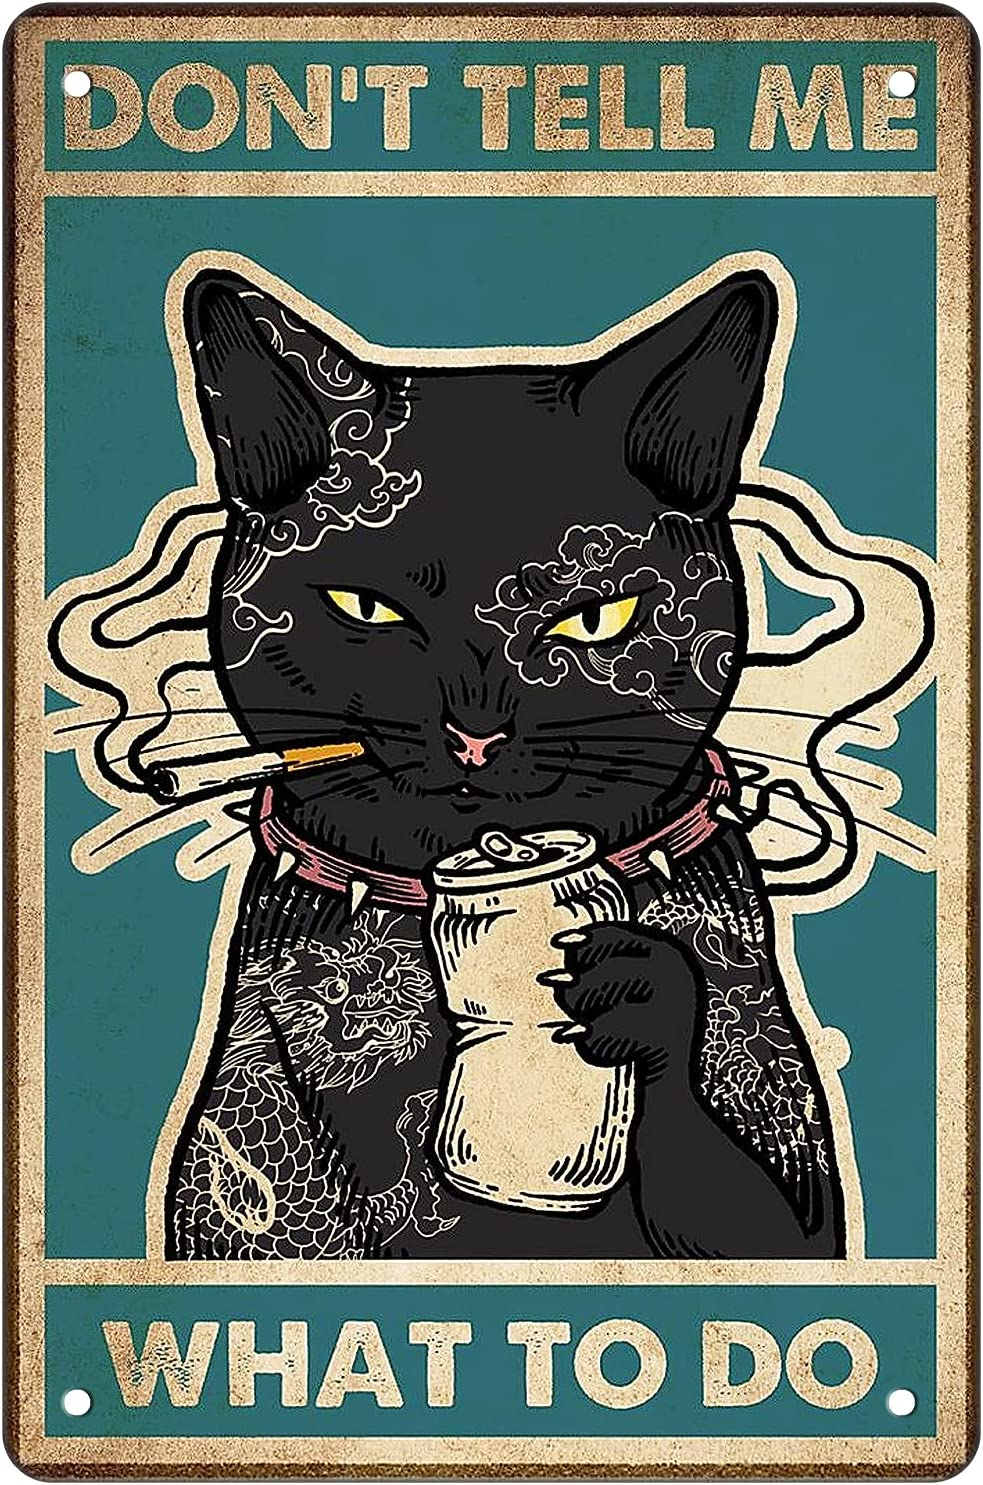 Funny Black Cat for Cat Lovers Gifts Vintage Wall Decor Black Cat Metal Tin Sign - DON'T TELL ME WHAT TO DO - Cat Wall Decor Posters Art for Home Office Classroom Coffee Bar Wall Decor 8 x 12 Inches